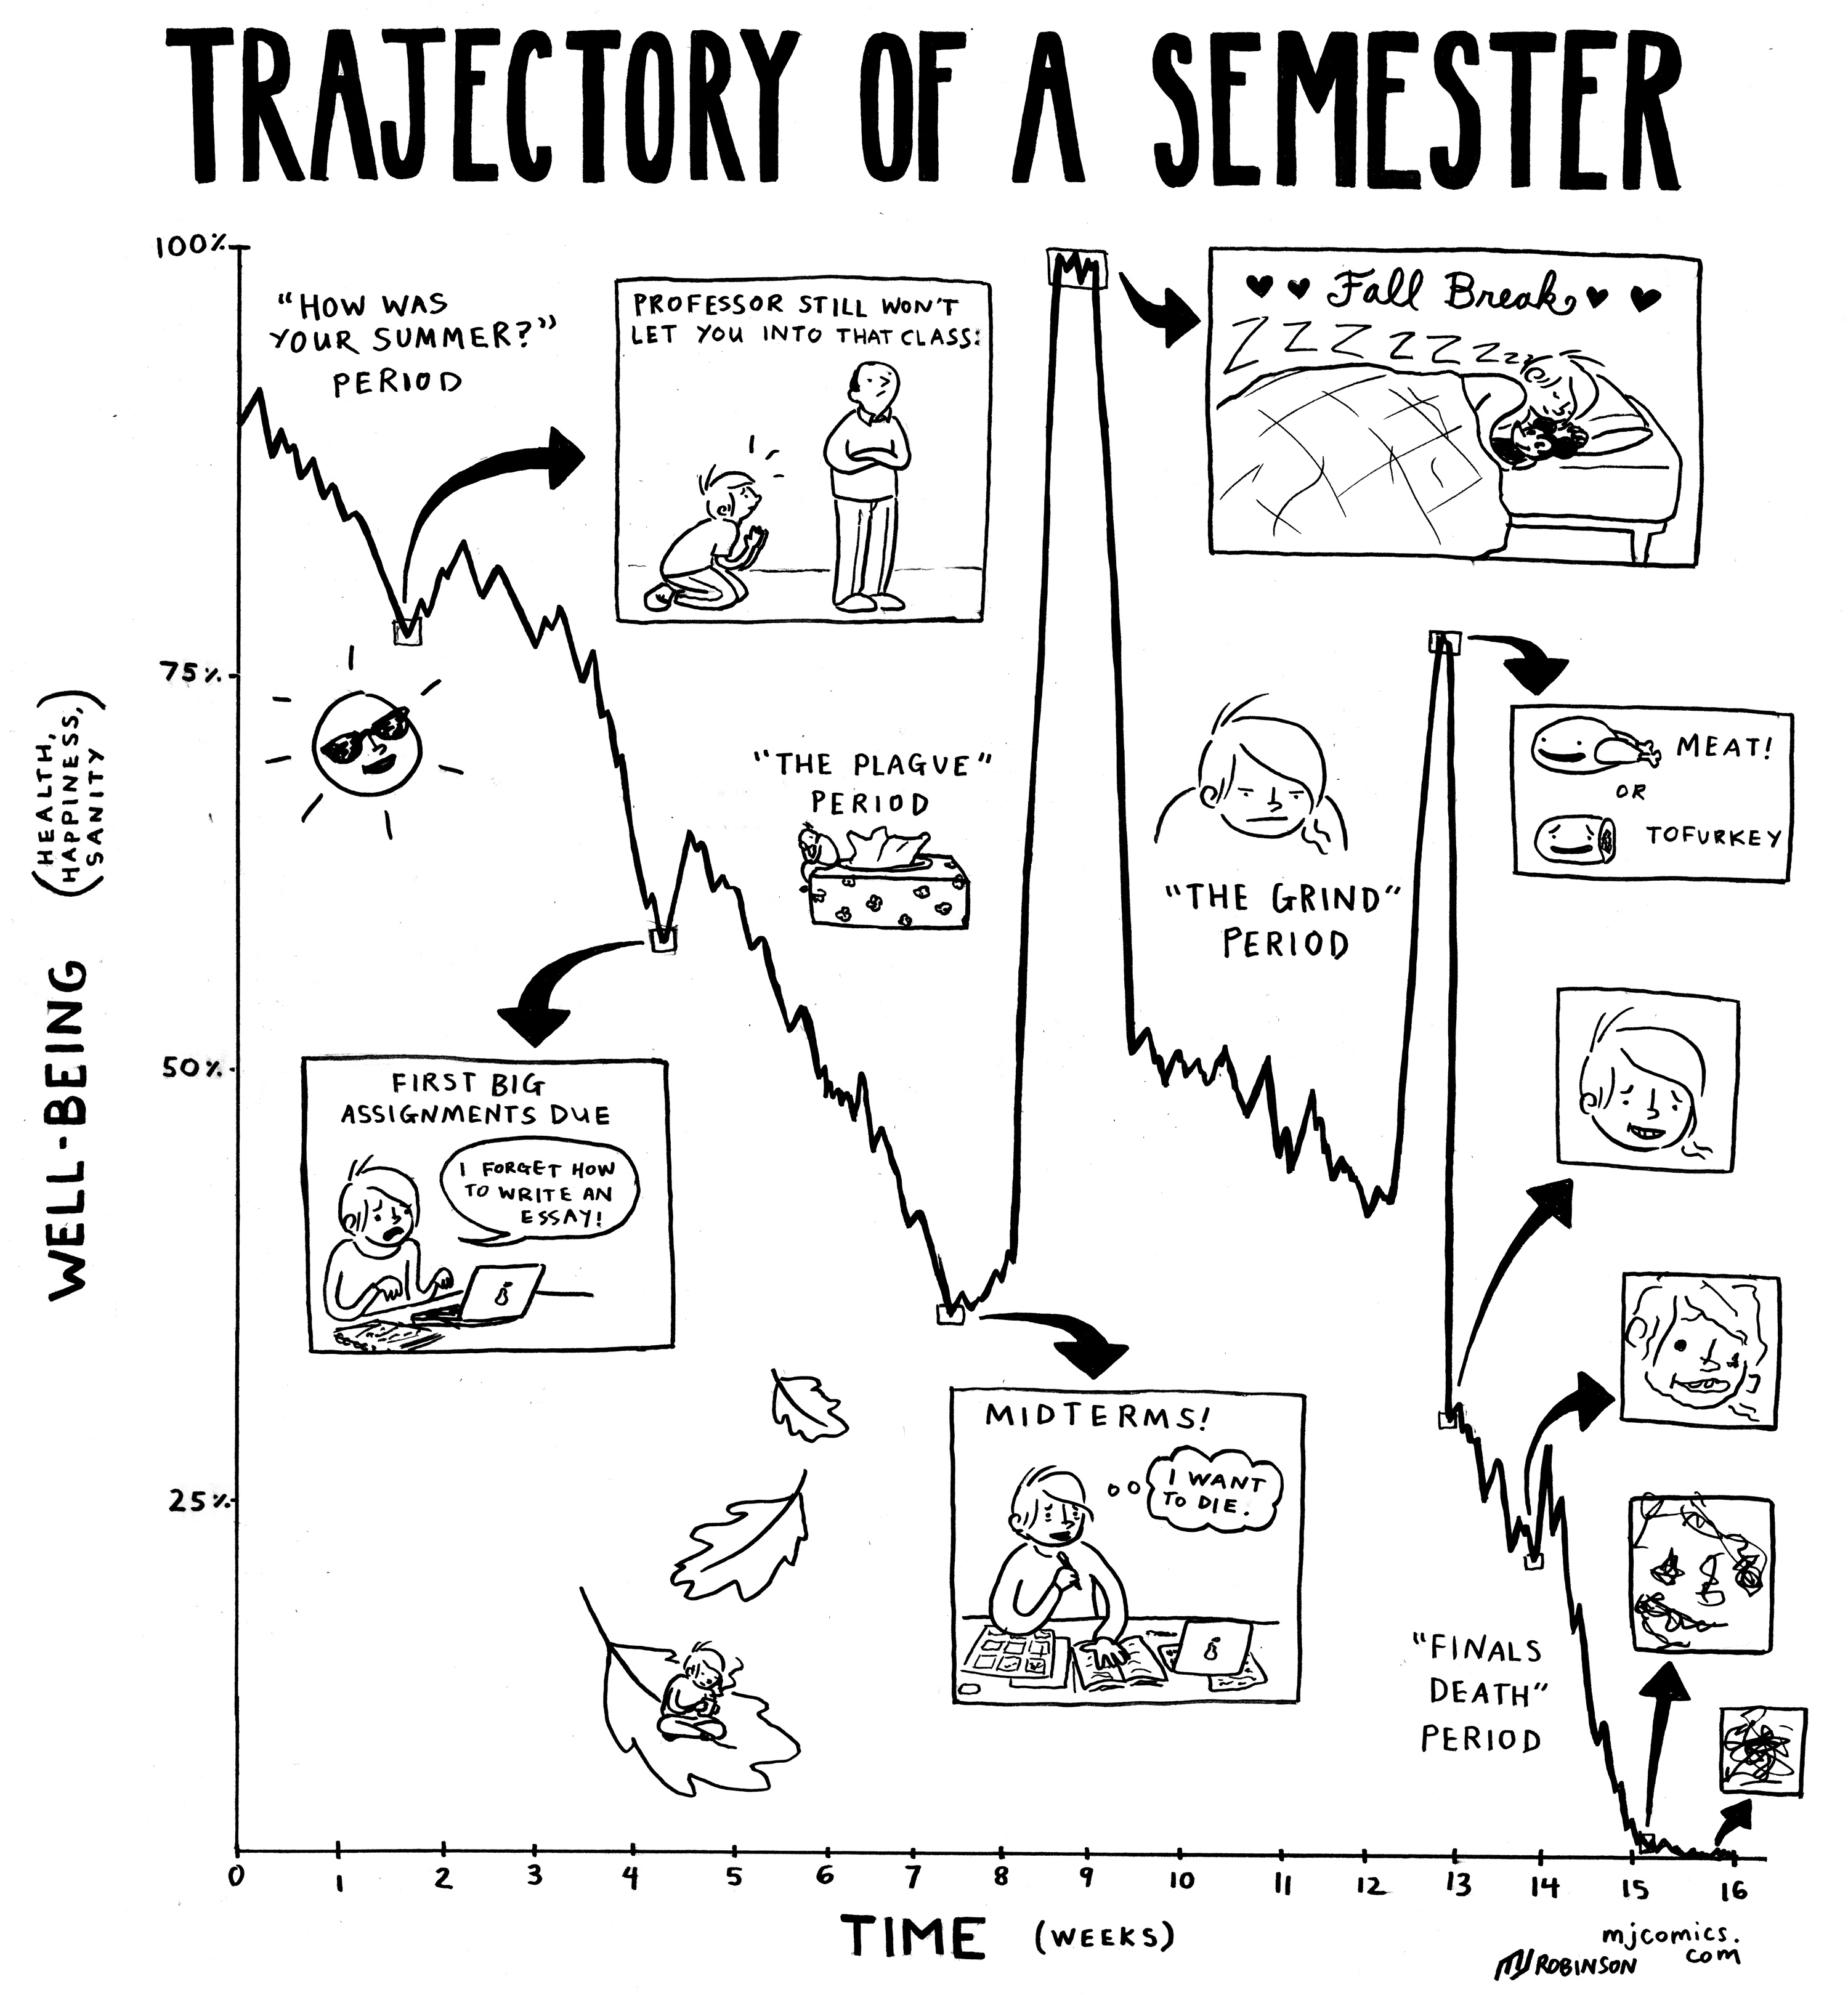 The Trajectory of a Semester